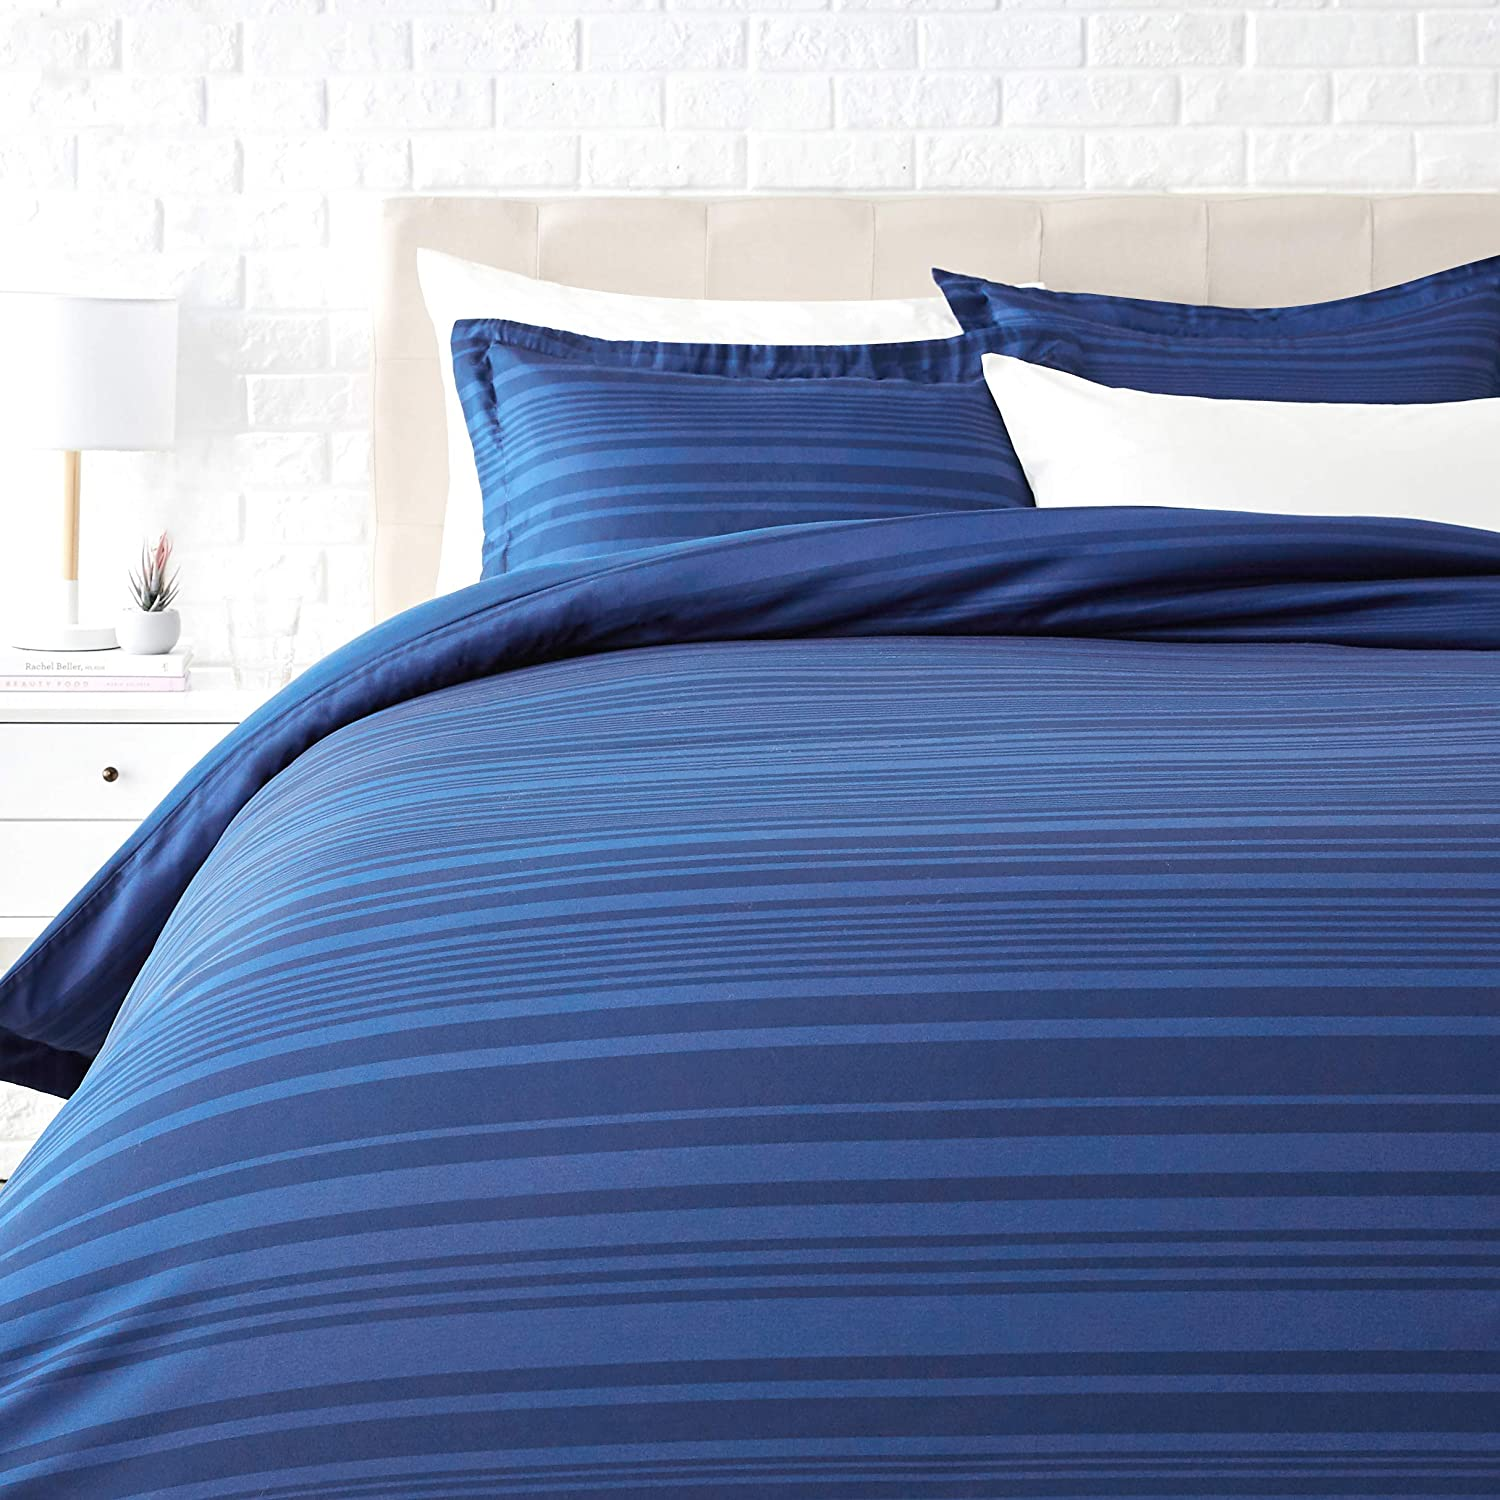 AmazonBasics Light-Weight Microfiber Duvet Cover Set with Zipper Closure - Full/Queen, Blue Calvin Stripe